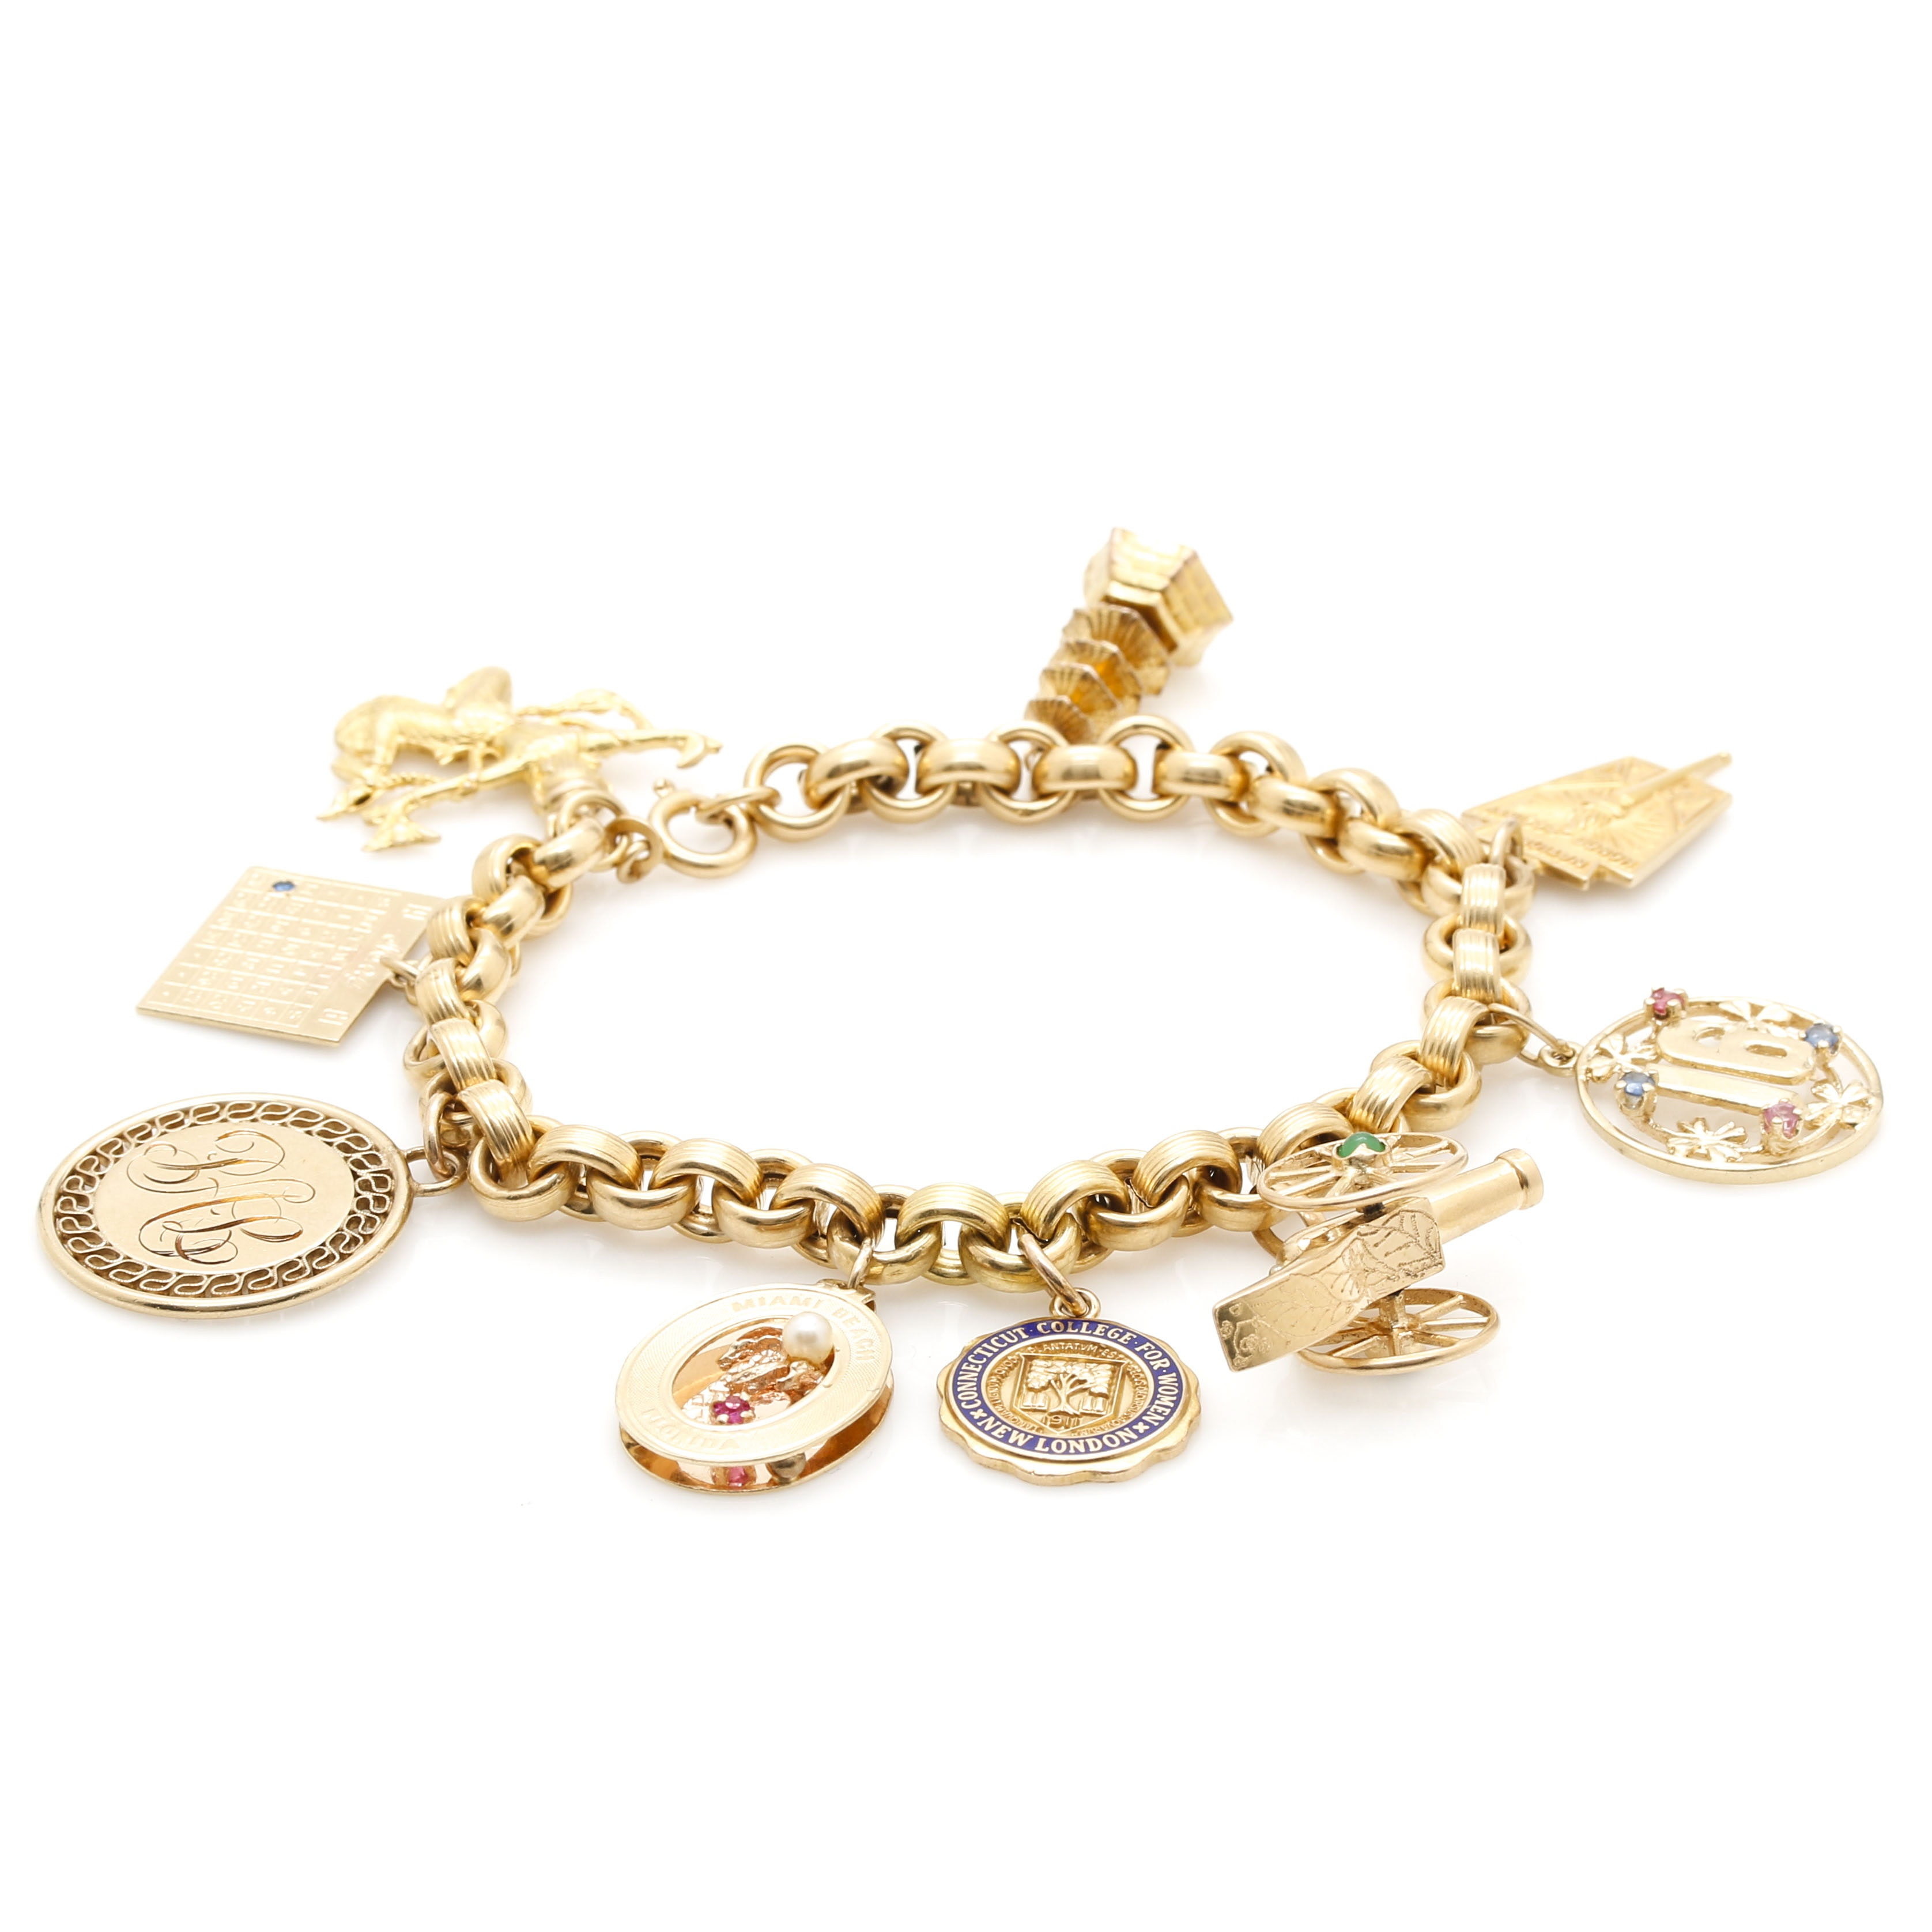 18K Yellow Gold Bracelet Featuring Assorted Gold and Gemstone Charms